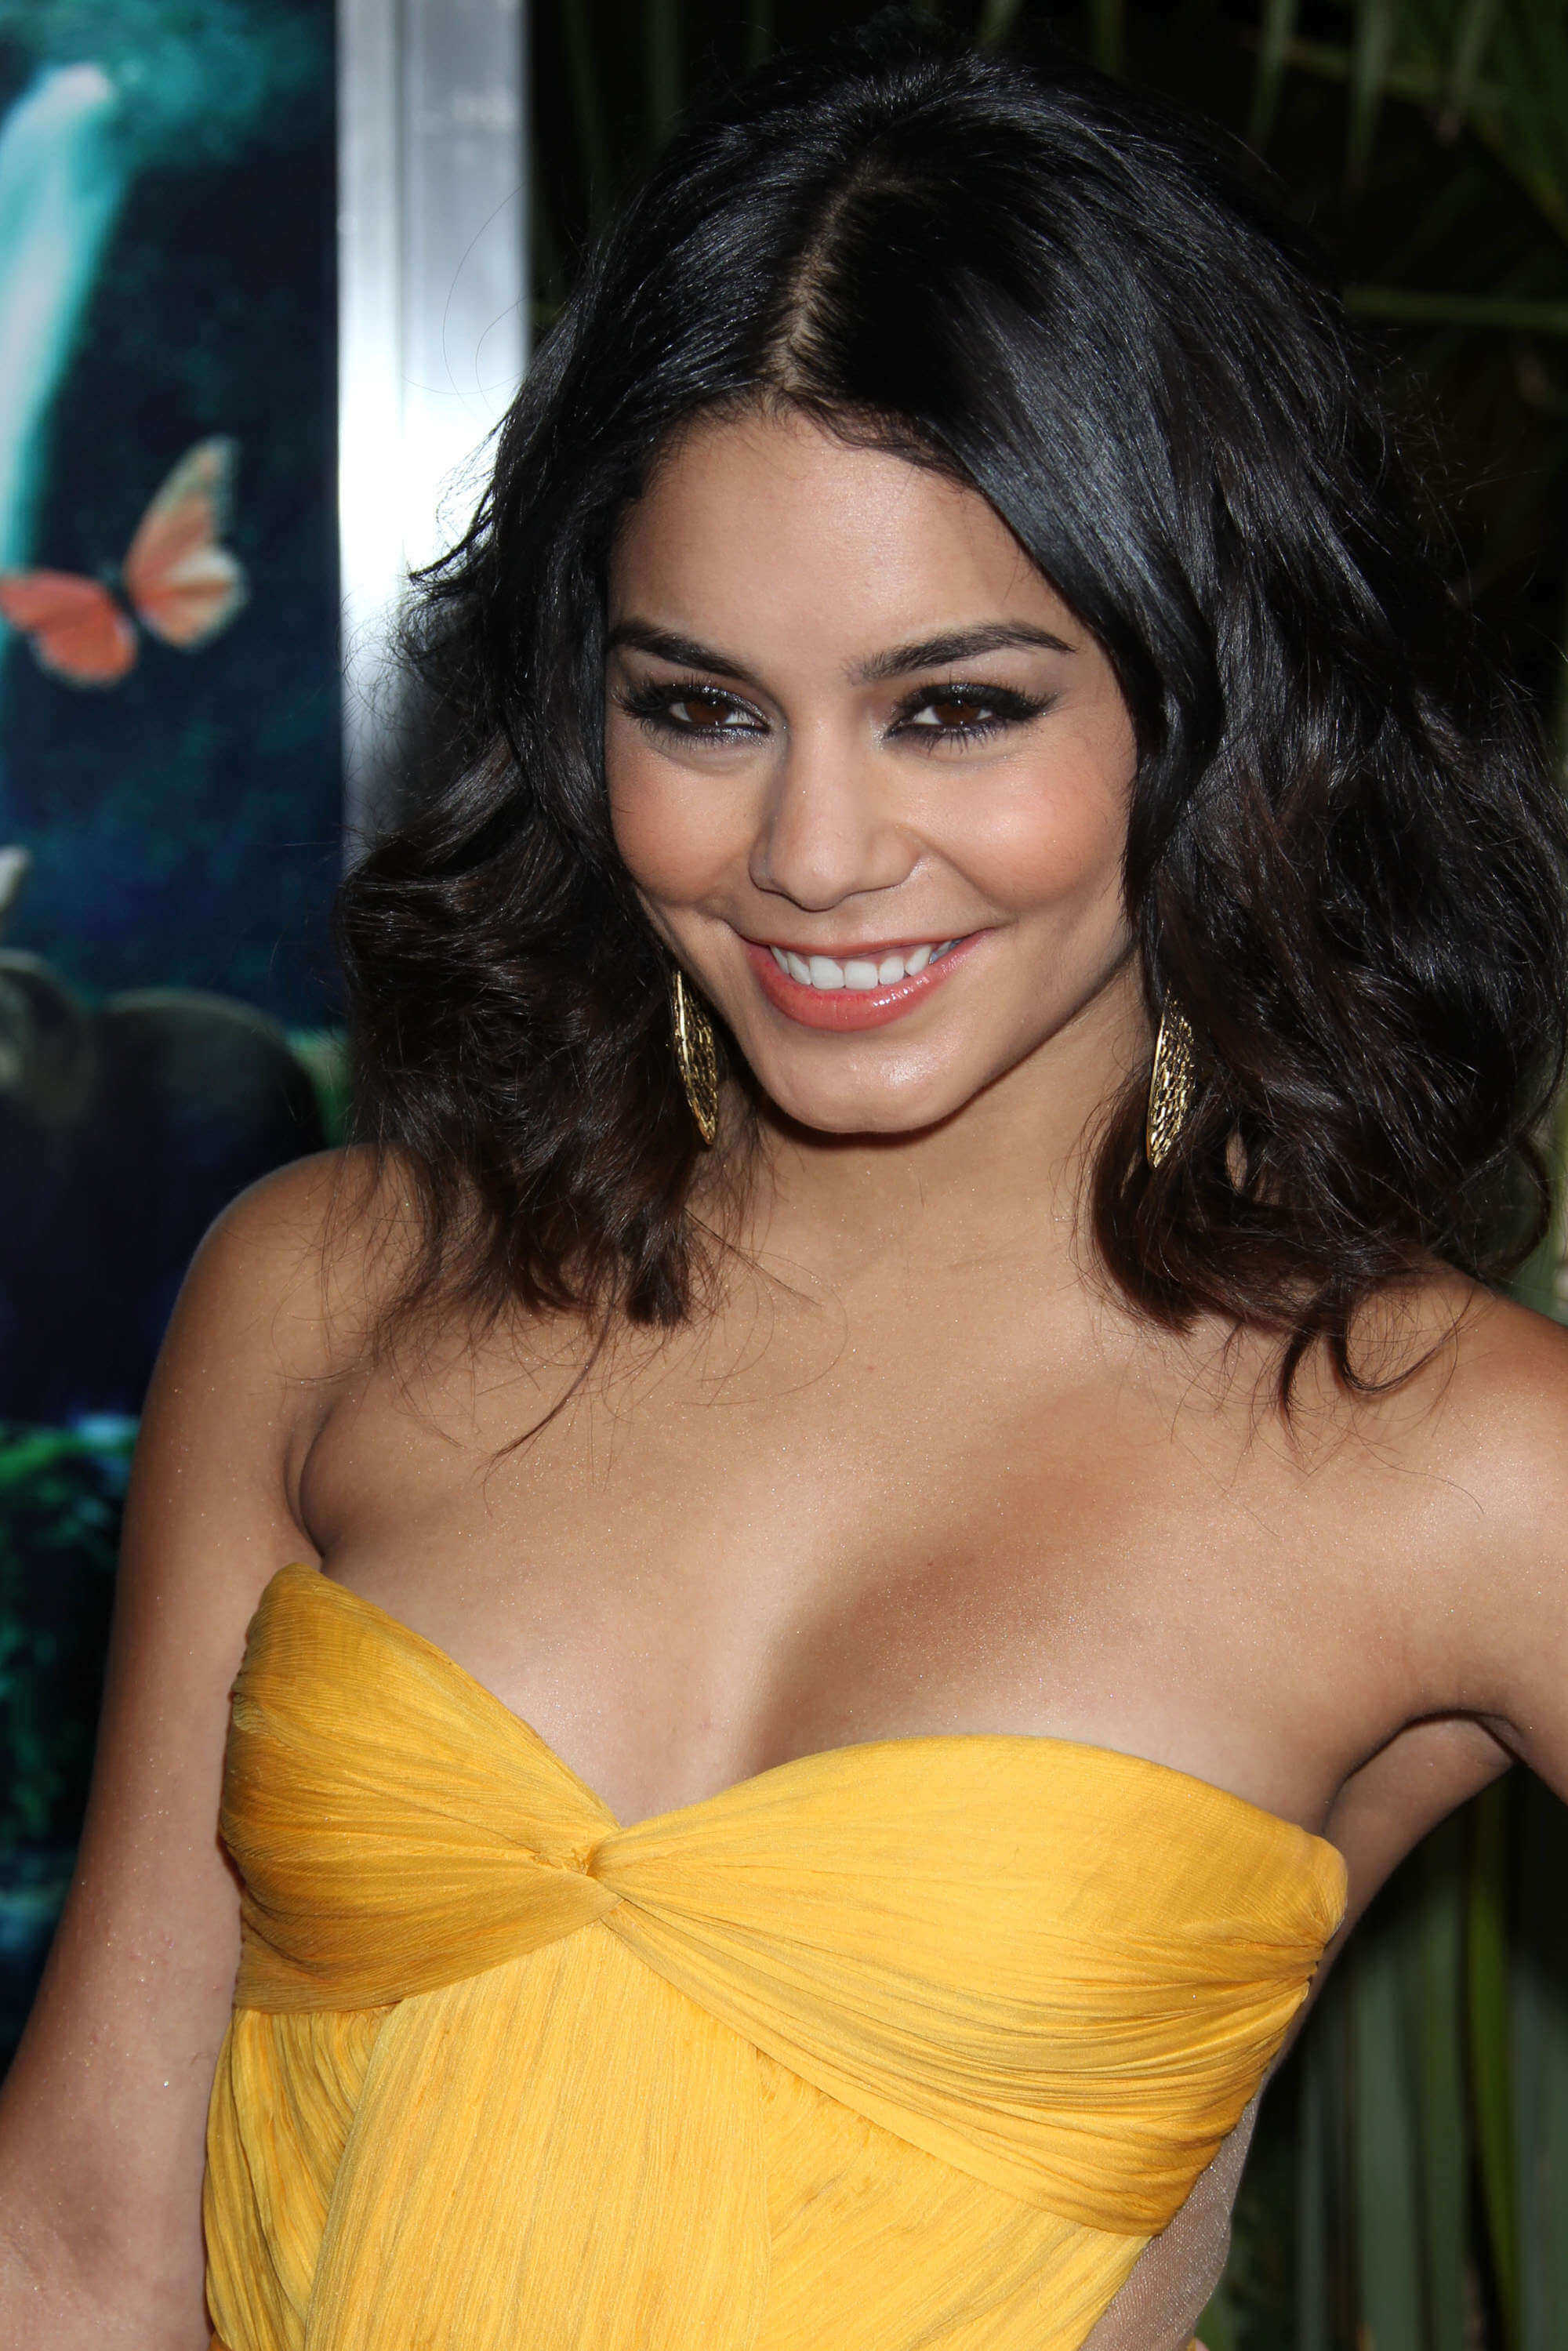 Vanessa Hudgens hot photo